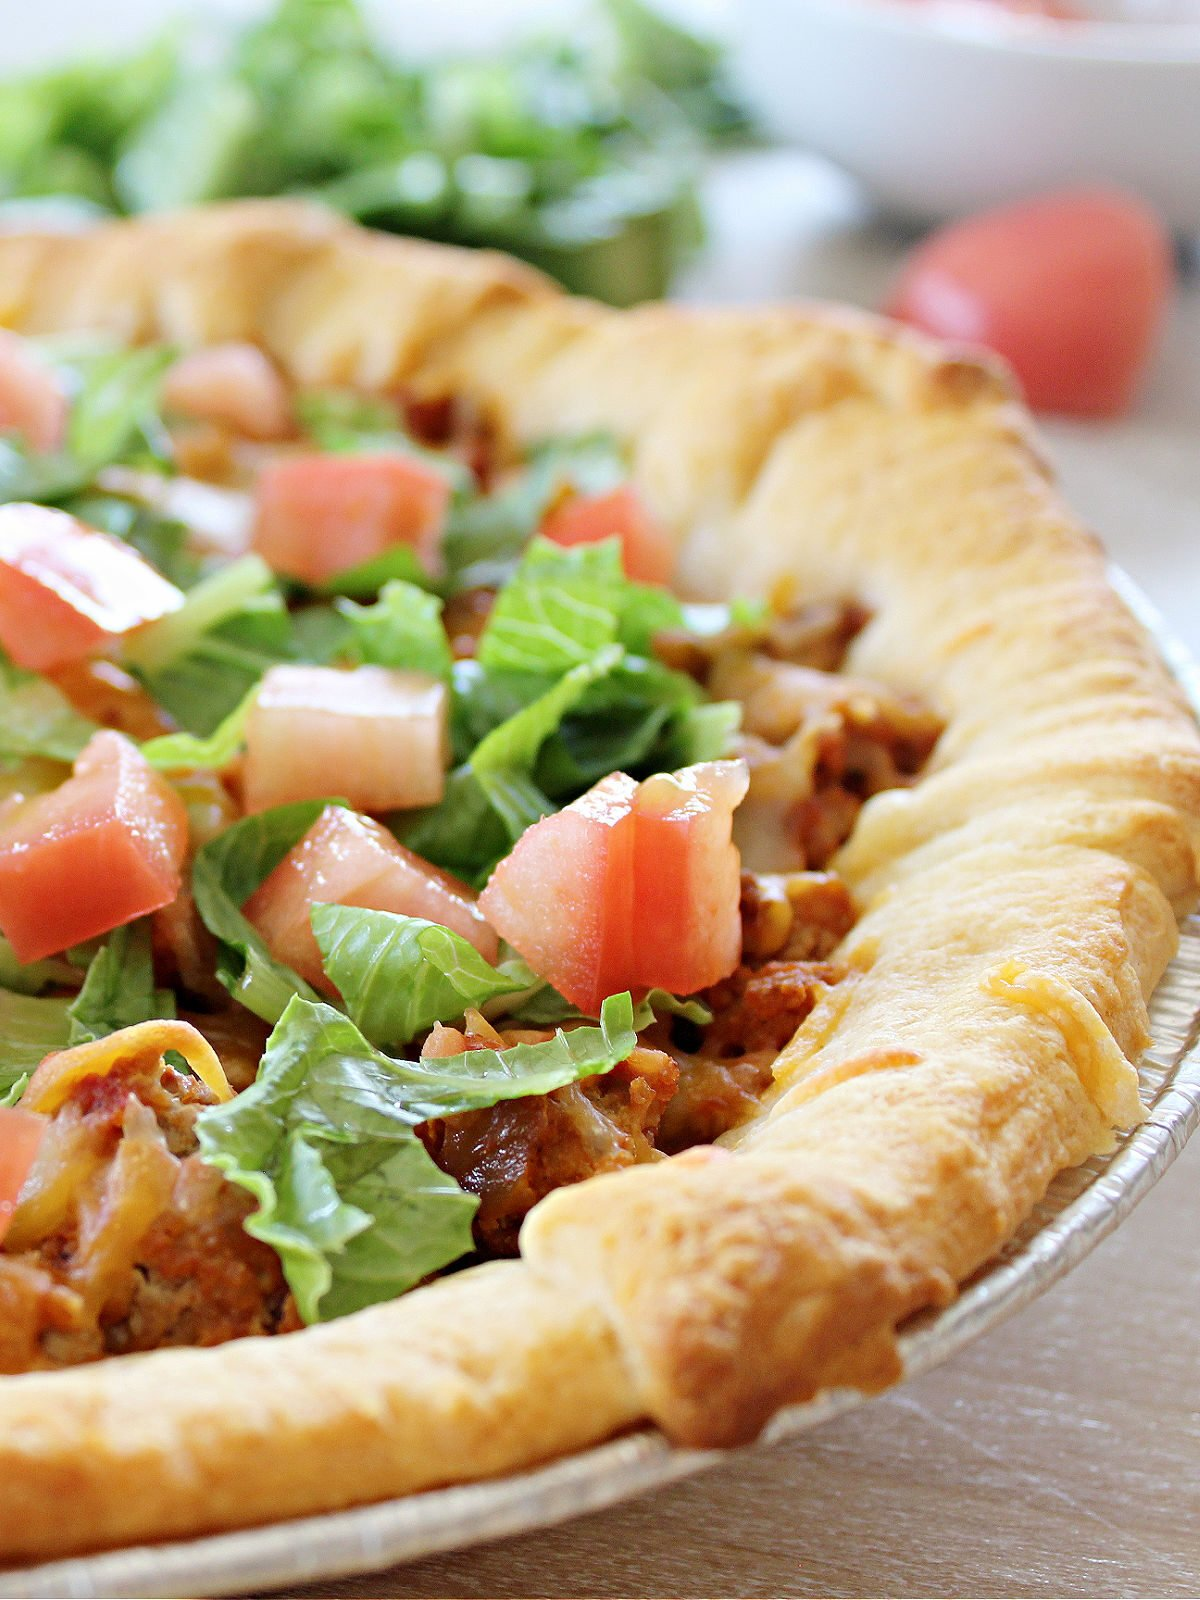 Taco pie made with ground beef and topped with layer of cheese and lettuce and tomatoes.